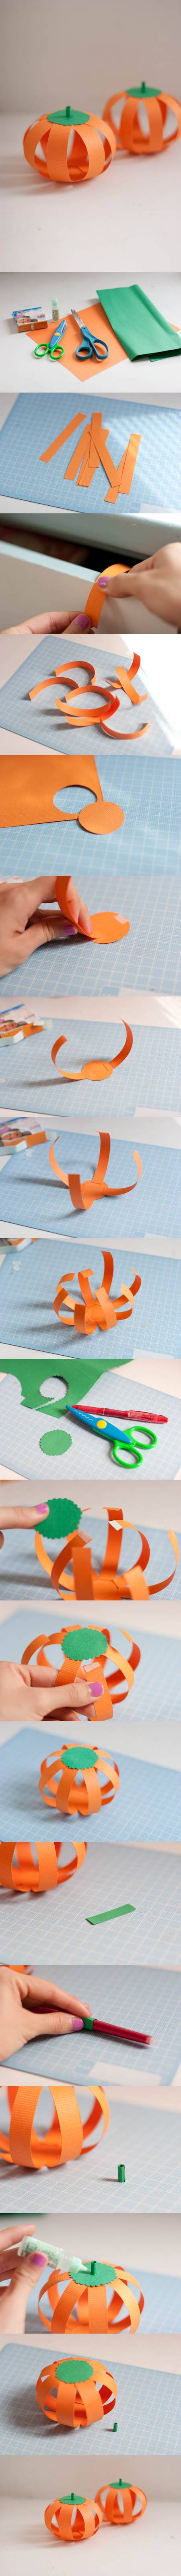 How to make Paper Halloween Pumpkin step by step DIY tutorial instructions